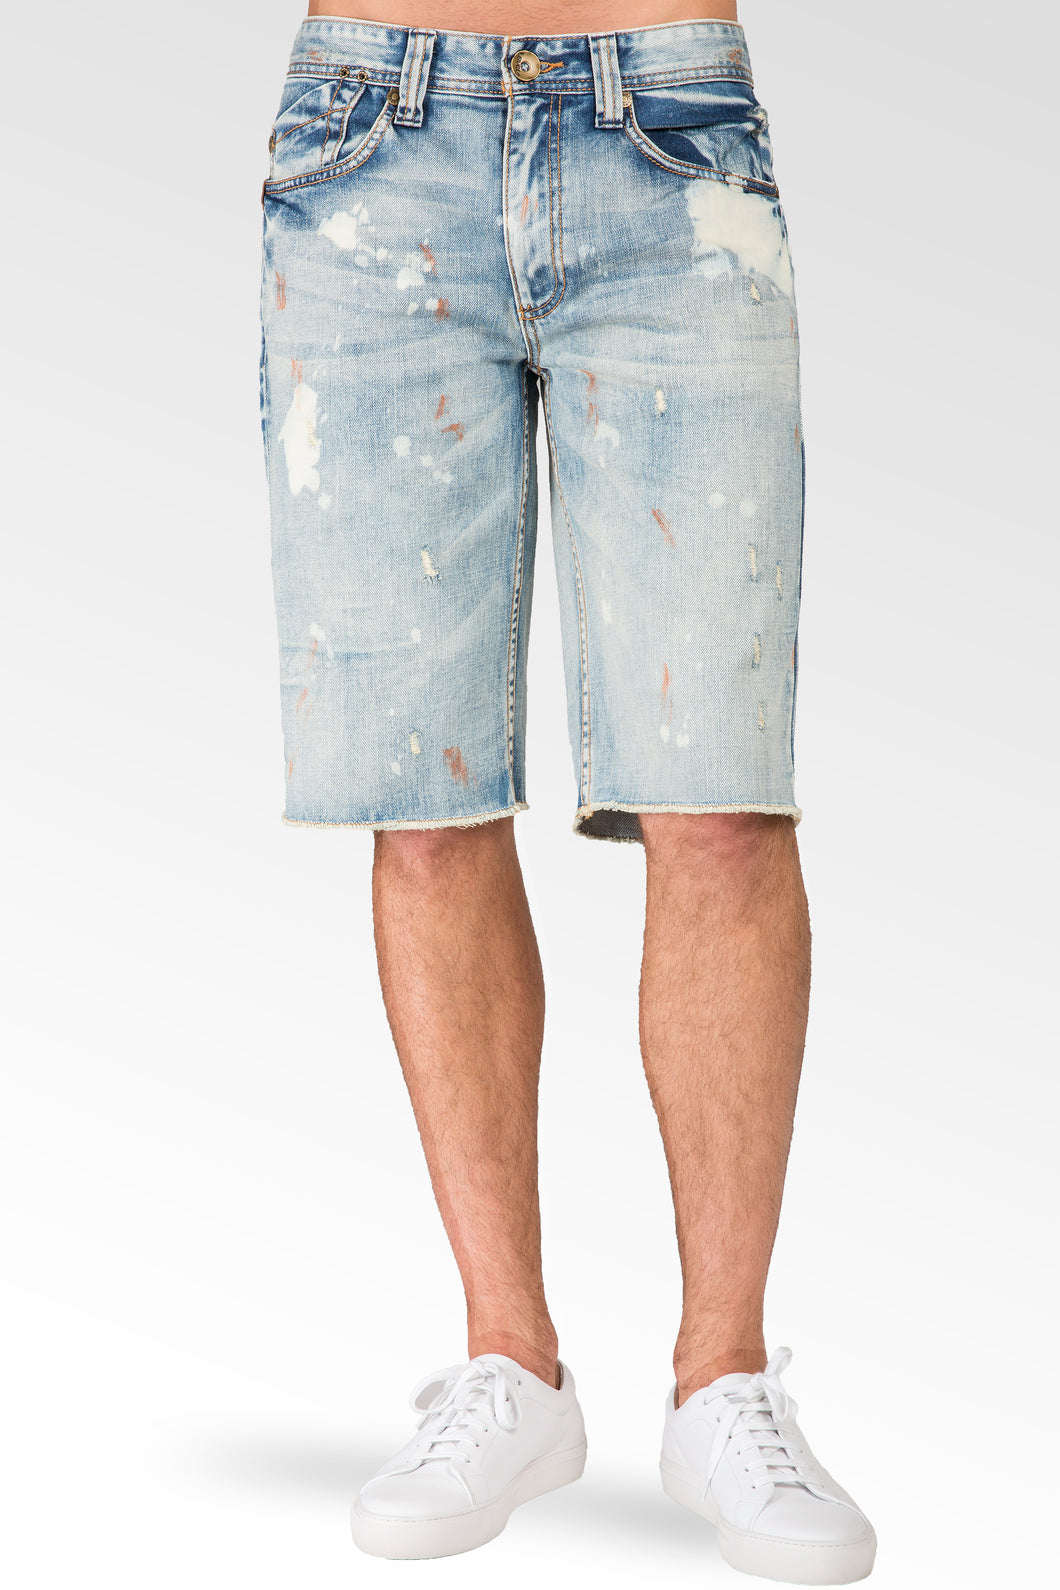 Relaxed Midrise Bleach Blue Cut Off Premium Denim Shorts 13